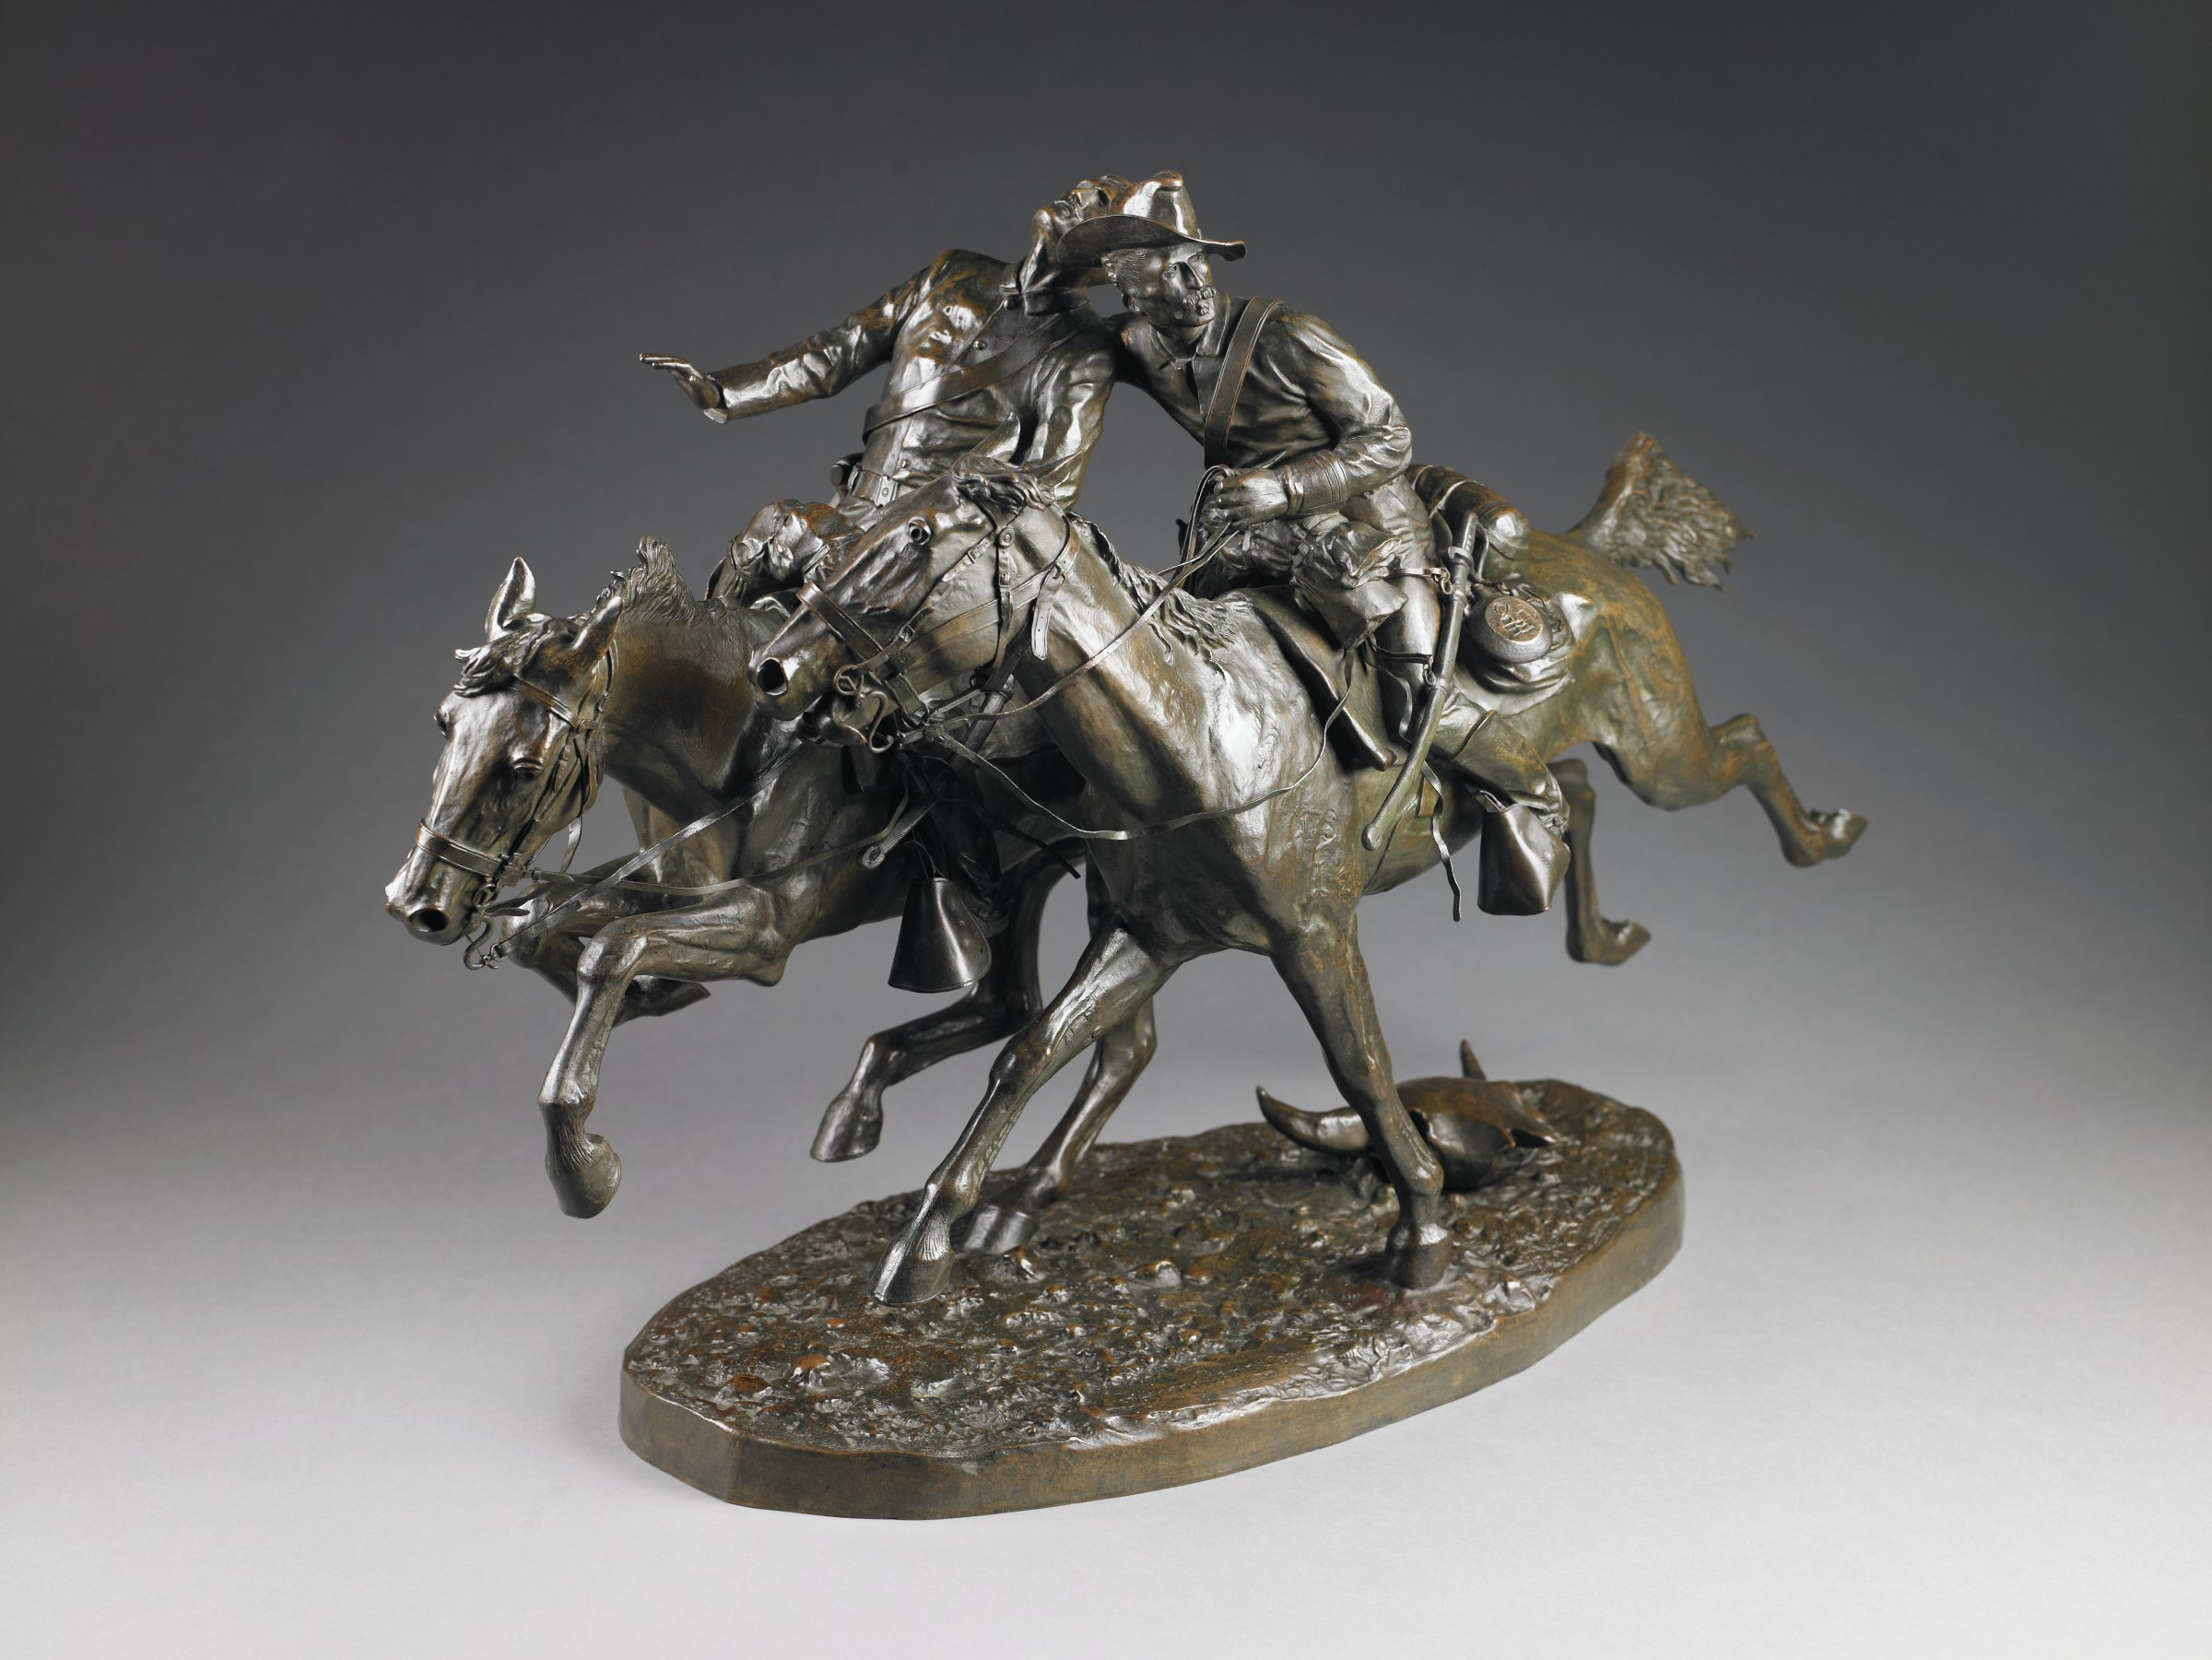 Two cavalry soldiers riding at full gallop. One has been founded and the other is helping to support him. The figures are supported solely by the foreleg of one horse and the hind leg of the other. A single buffalo skull adorns the base.